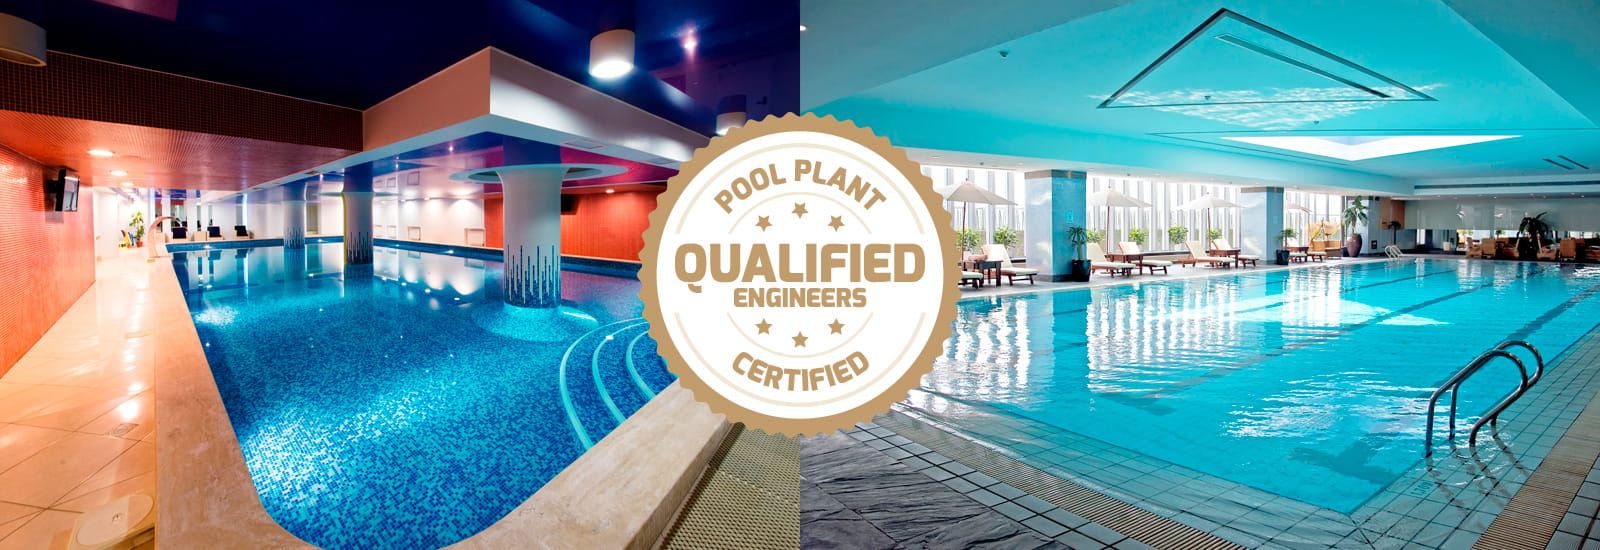 Pool Plant Certified